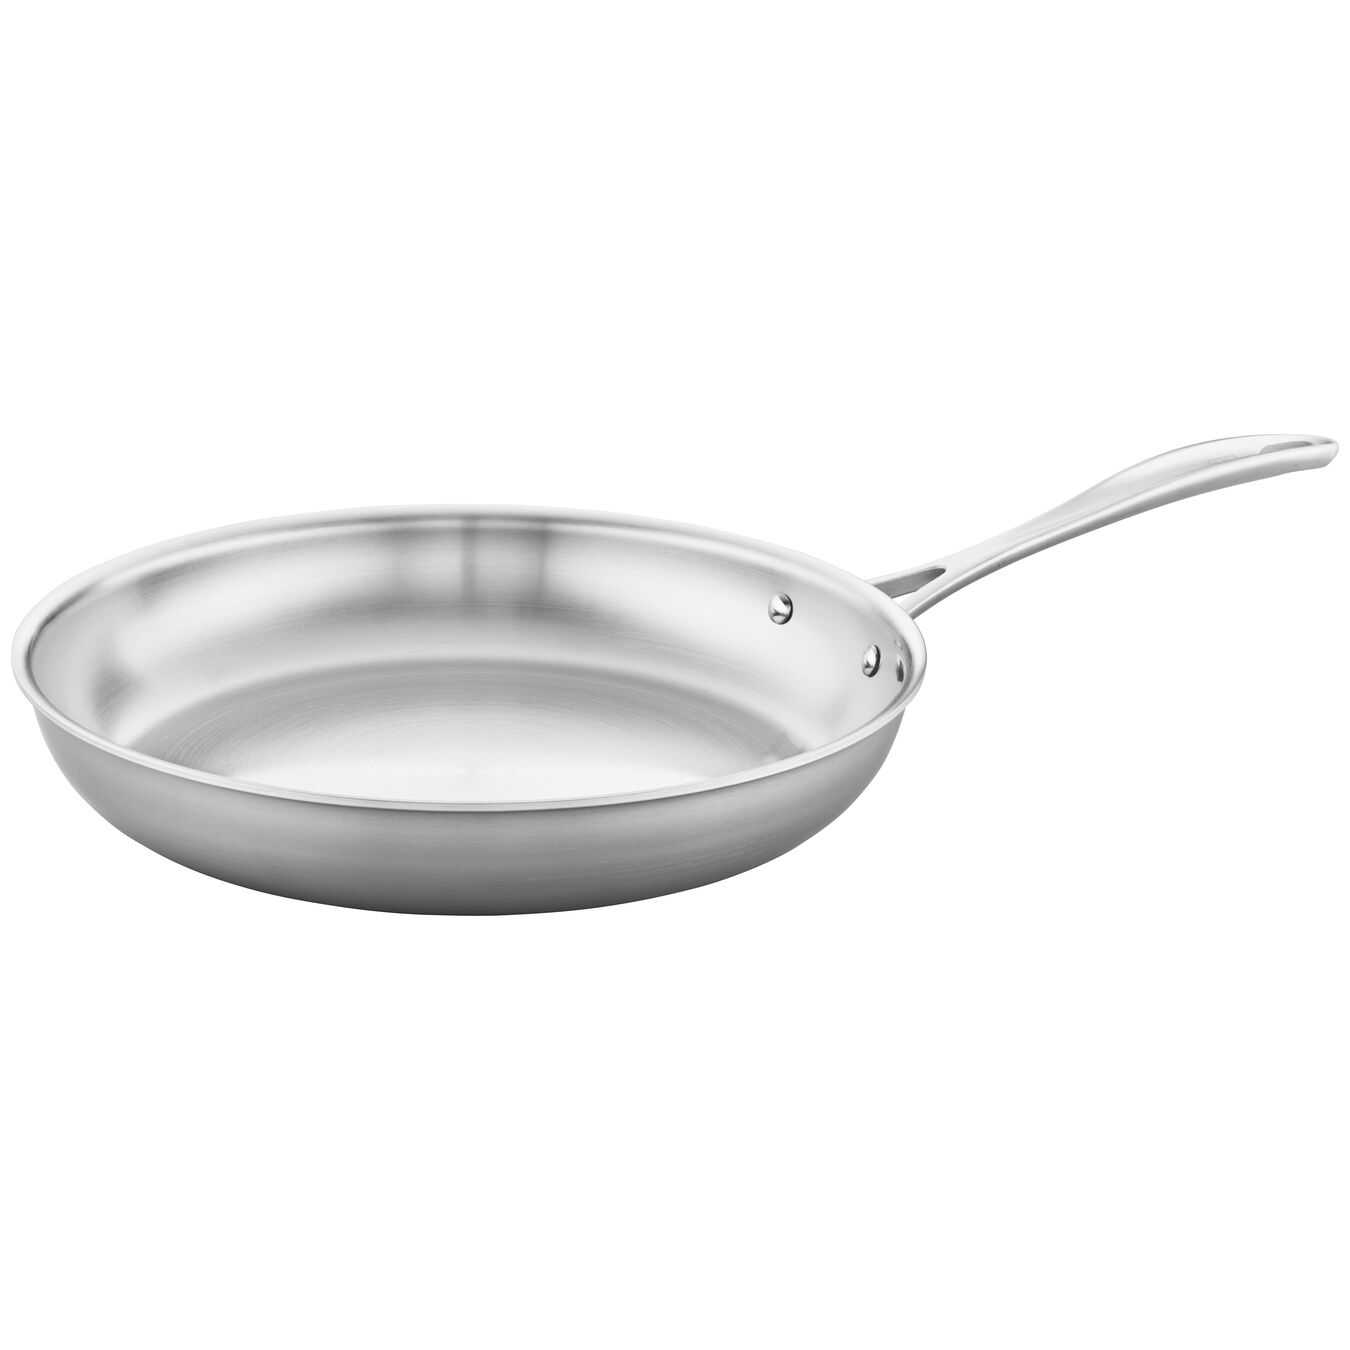 3-ply 12-inch Stainless Steel Fry Pan,,large 3